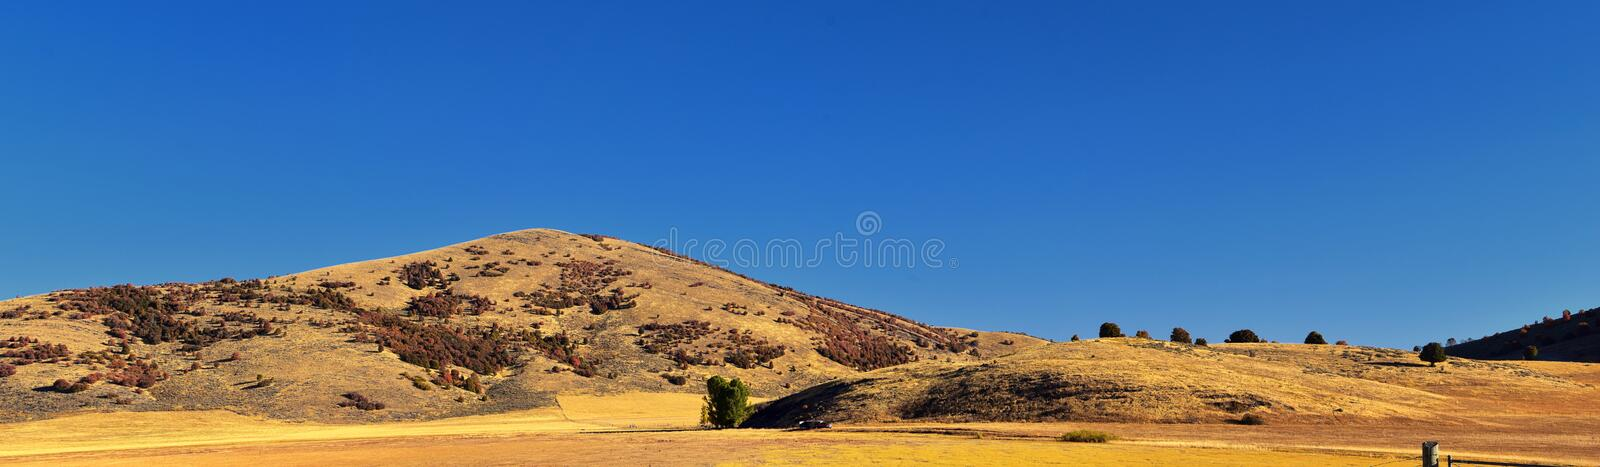 Box Elder Canyon landscape views, popularly known as Sardine Canyon, North of Brigham City within the western slopes of the Wellsv. Ille Mountains, by Logan in royalty free stock photo